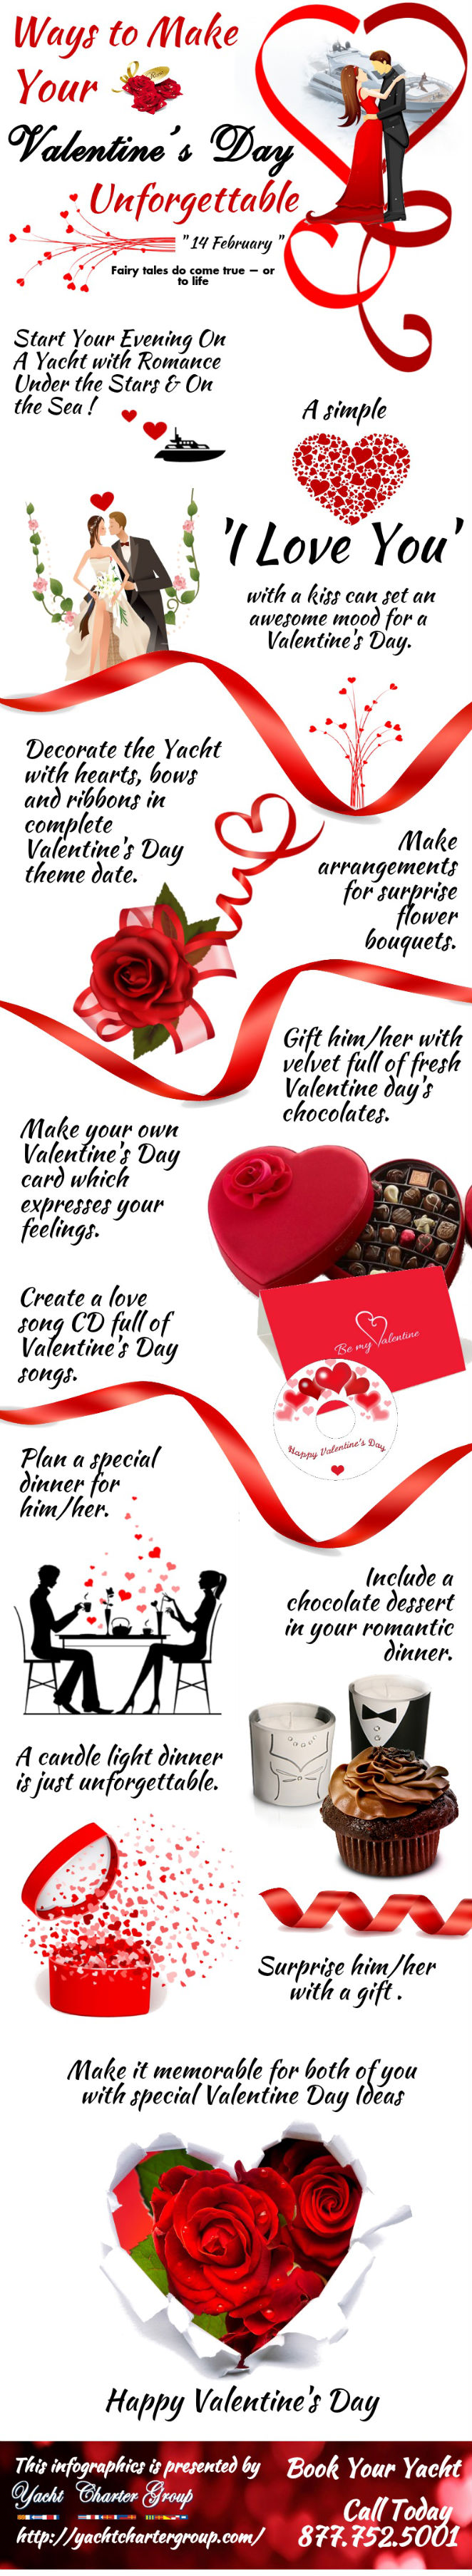 ways to make your valentine's day unforgettable